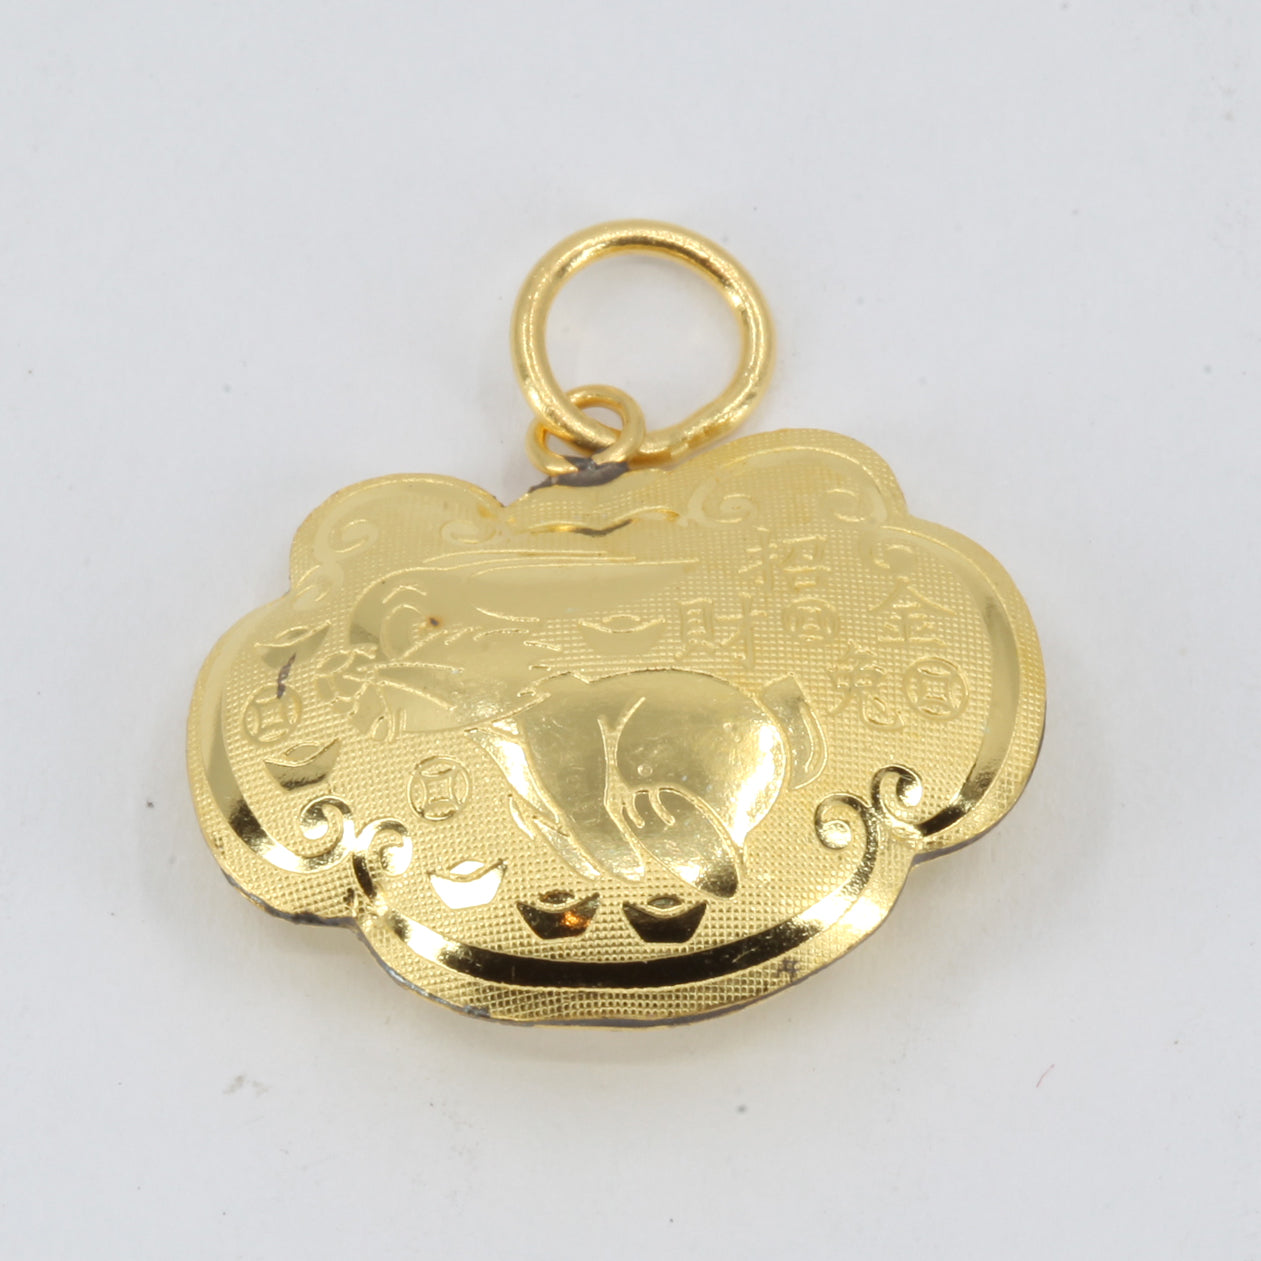 24K Solid Yellow Gold Baby Puffy Rabbit Longevity Lock Hollow Pendant 5.0 Grams